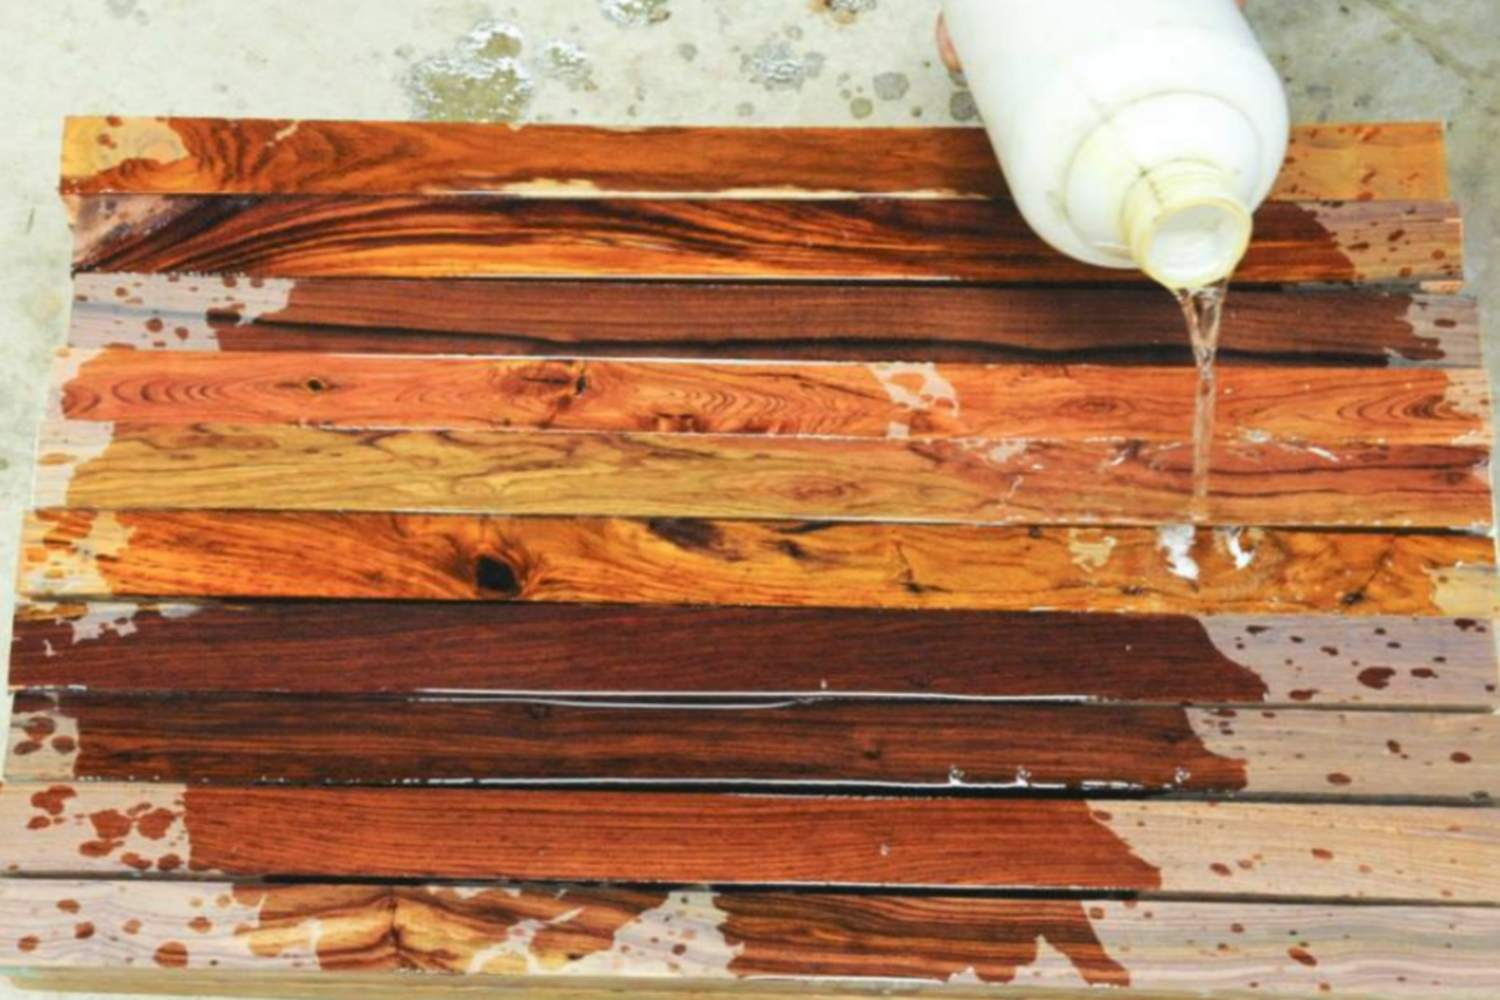 Freshly stained specialty hardwood